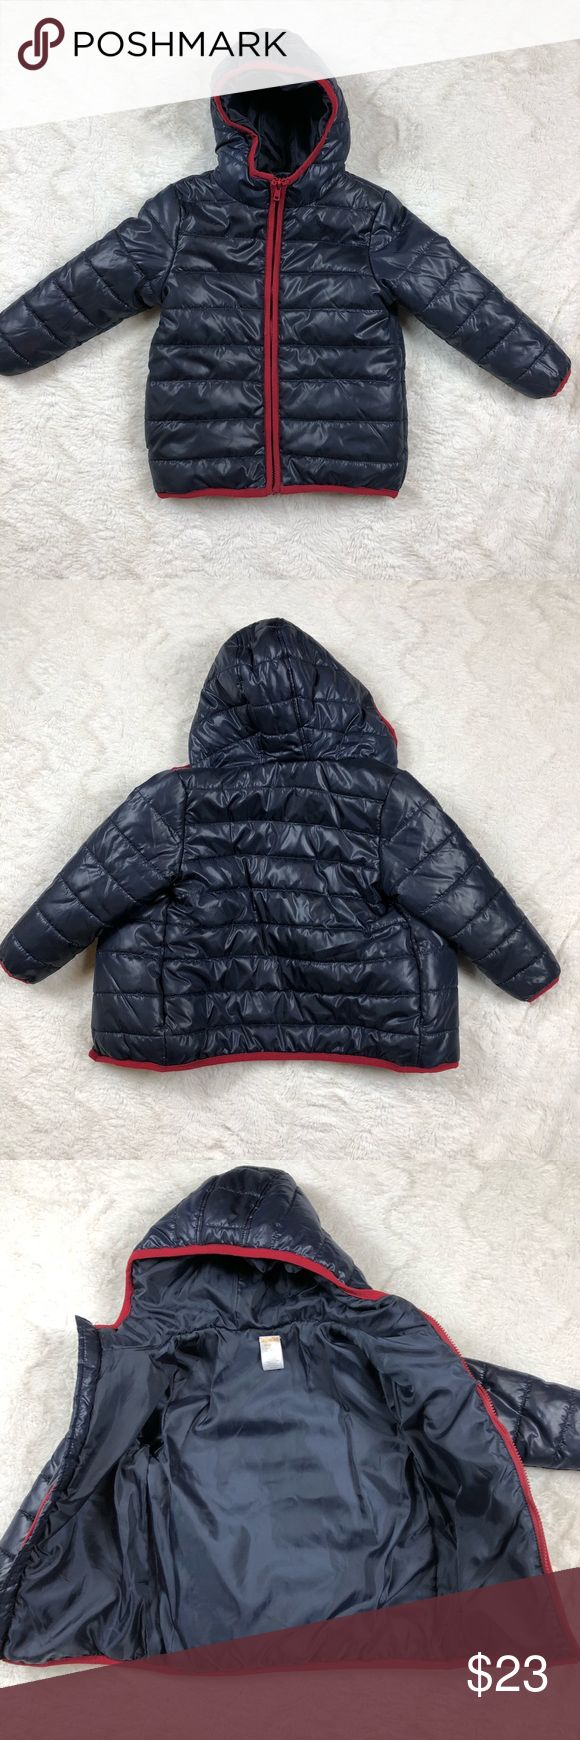 Gymboree Boys Winter Coat Jacket Condition: Very good. No stains, rips, or odors. Minimal signs of previously being worn. Please view listing pictures & additional questions are always welcomed. All items are honestly presented to the best of my knowledge, and are stored in a non-smoking environment. No returns Gymboree Jackets & Coats